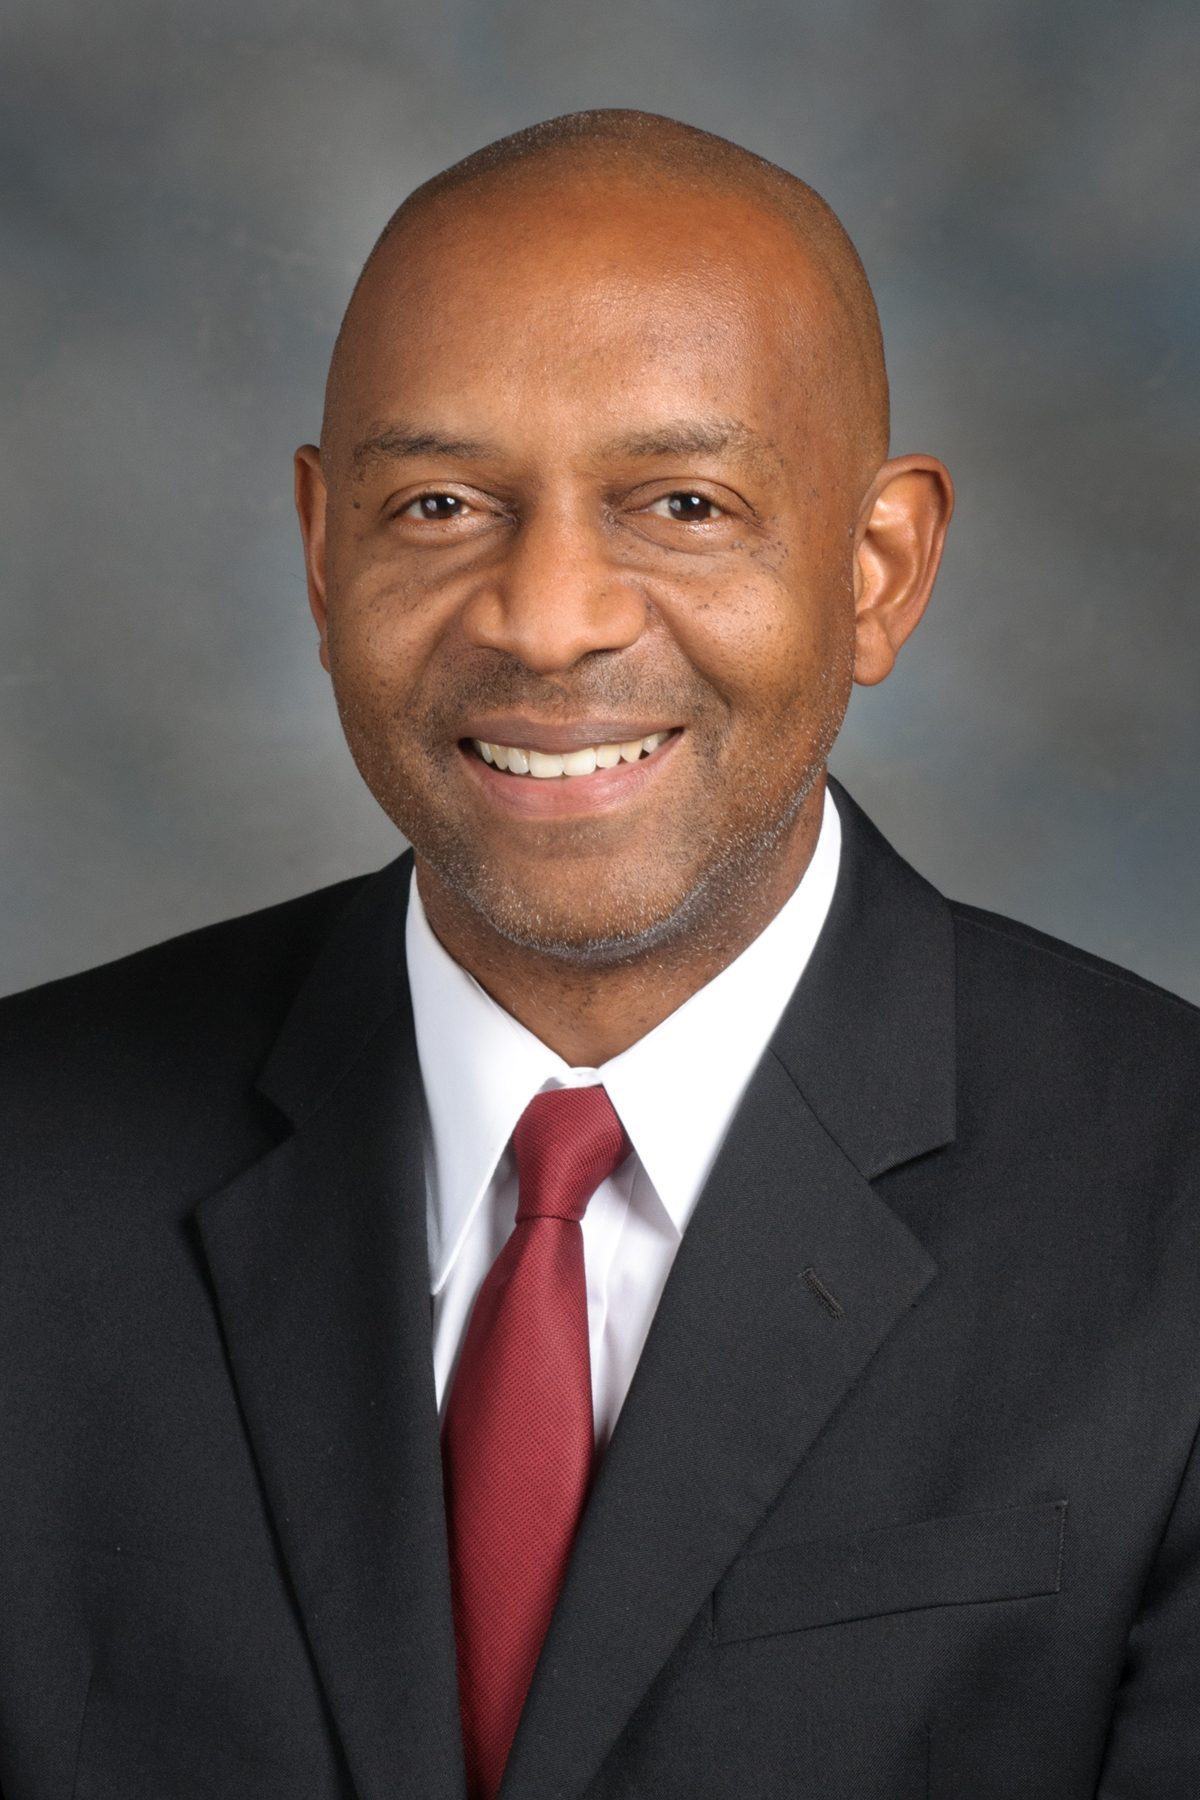 Robert L. Satcher Image